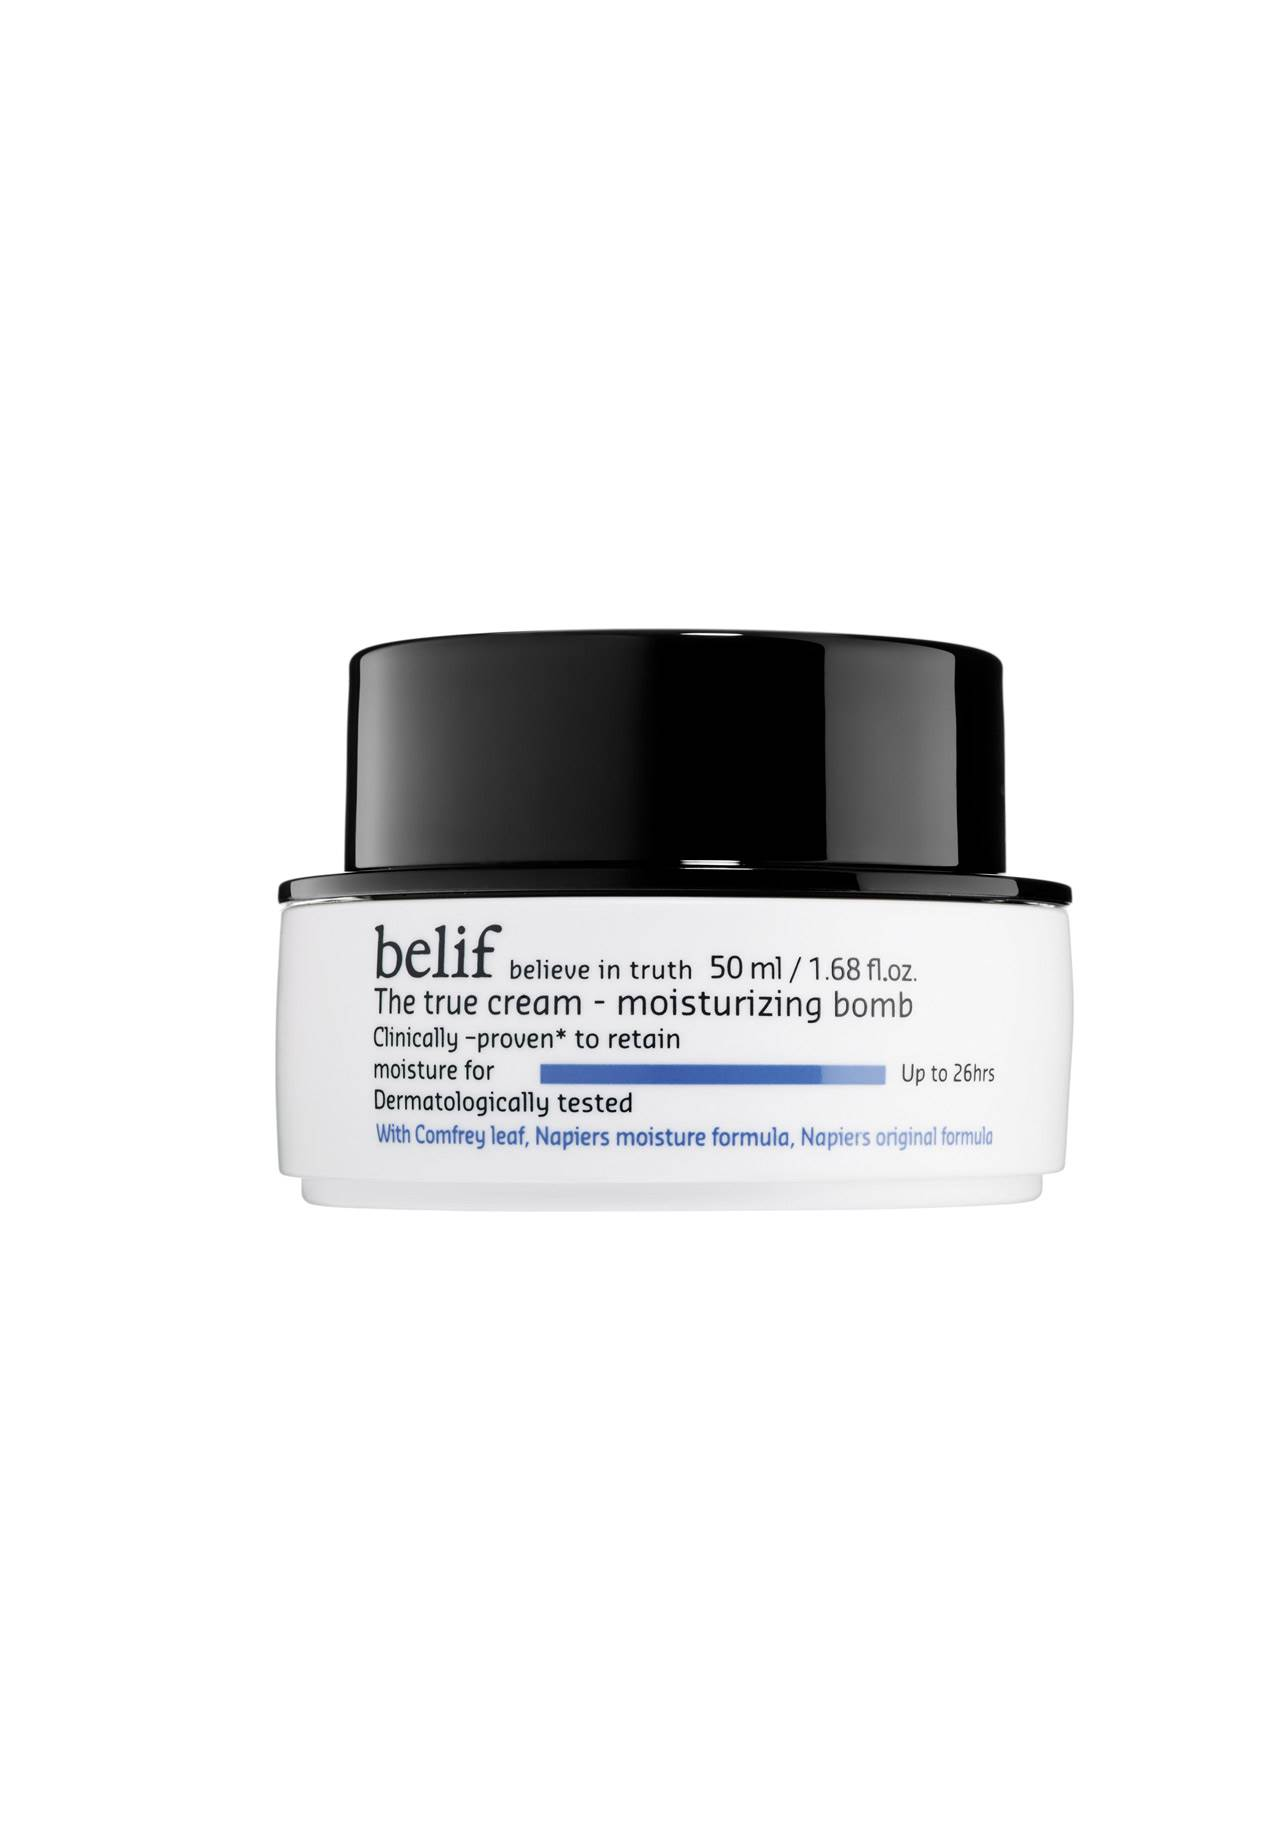 cosméticos sephora baratos The True Cream Moisturizing Bomb de Belif, 34,95€